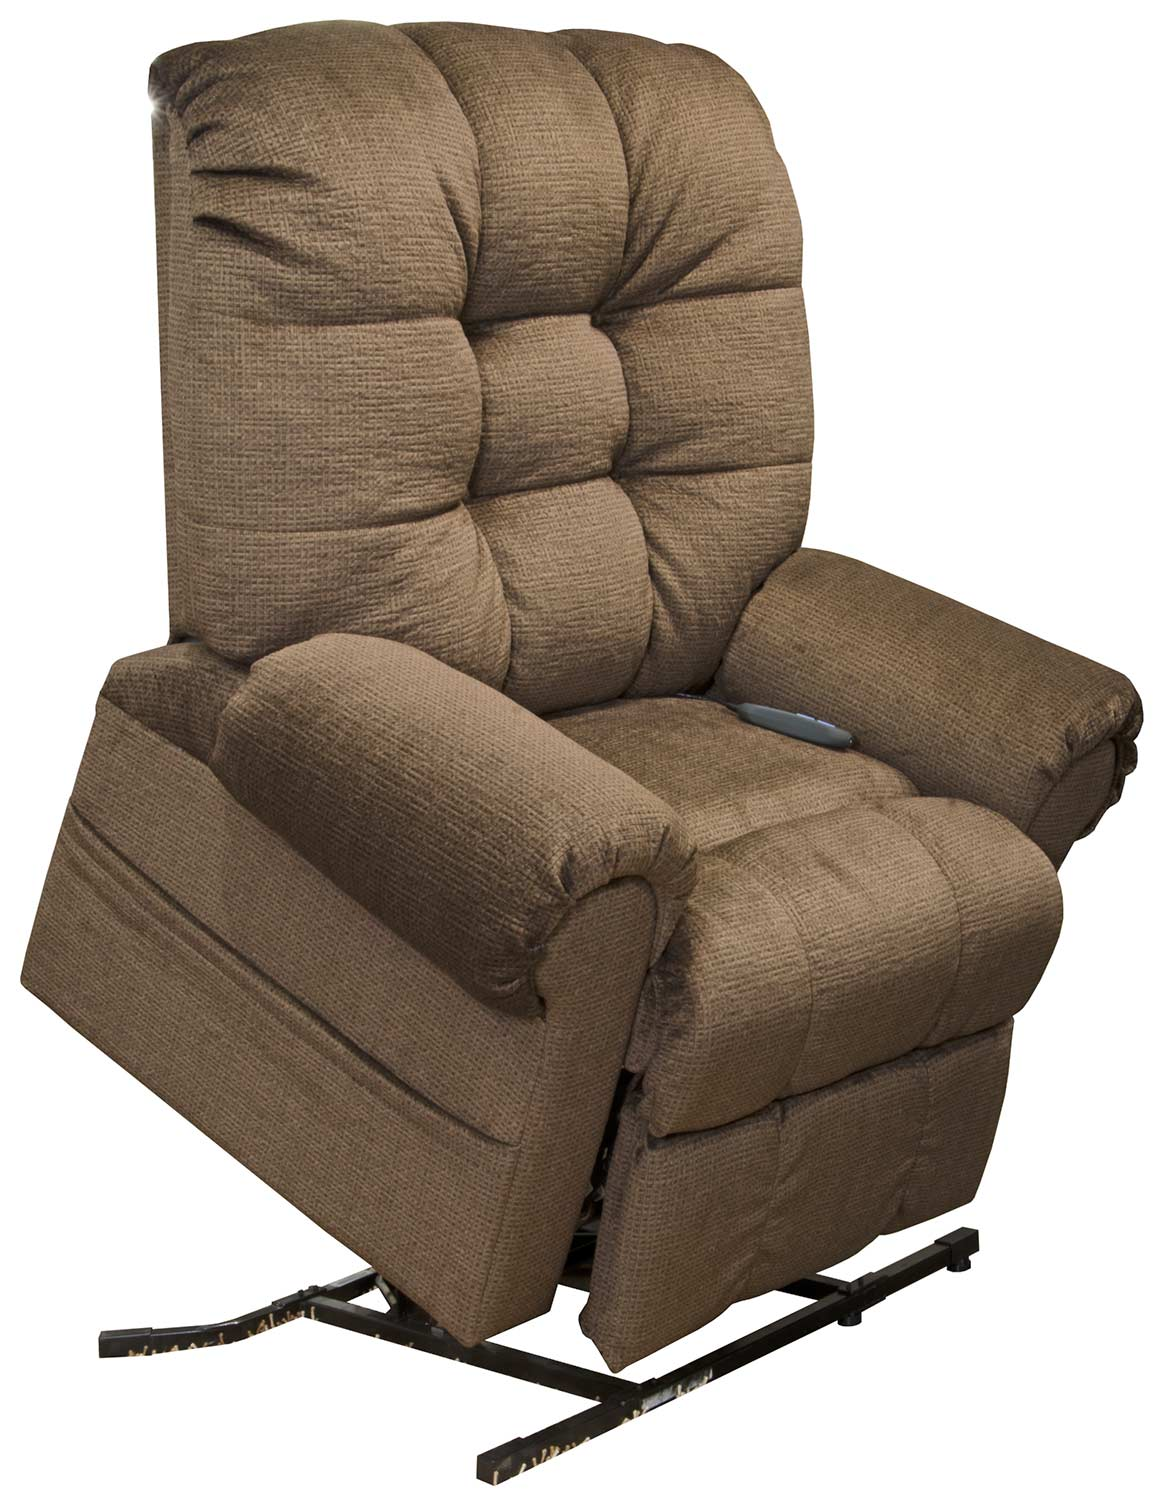 CatNapper Omni Power Lift Recliner Chair - Truffle